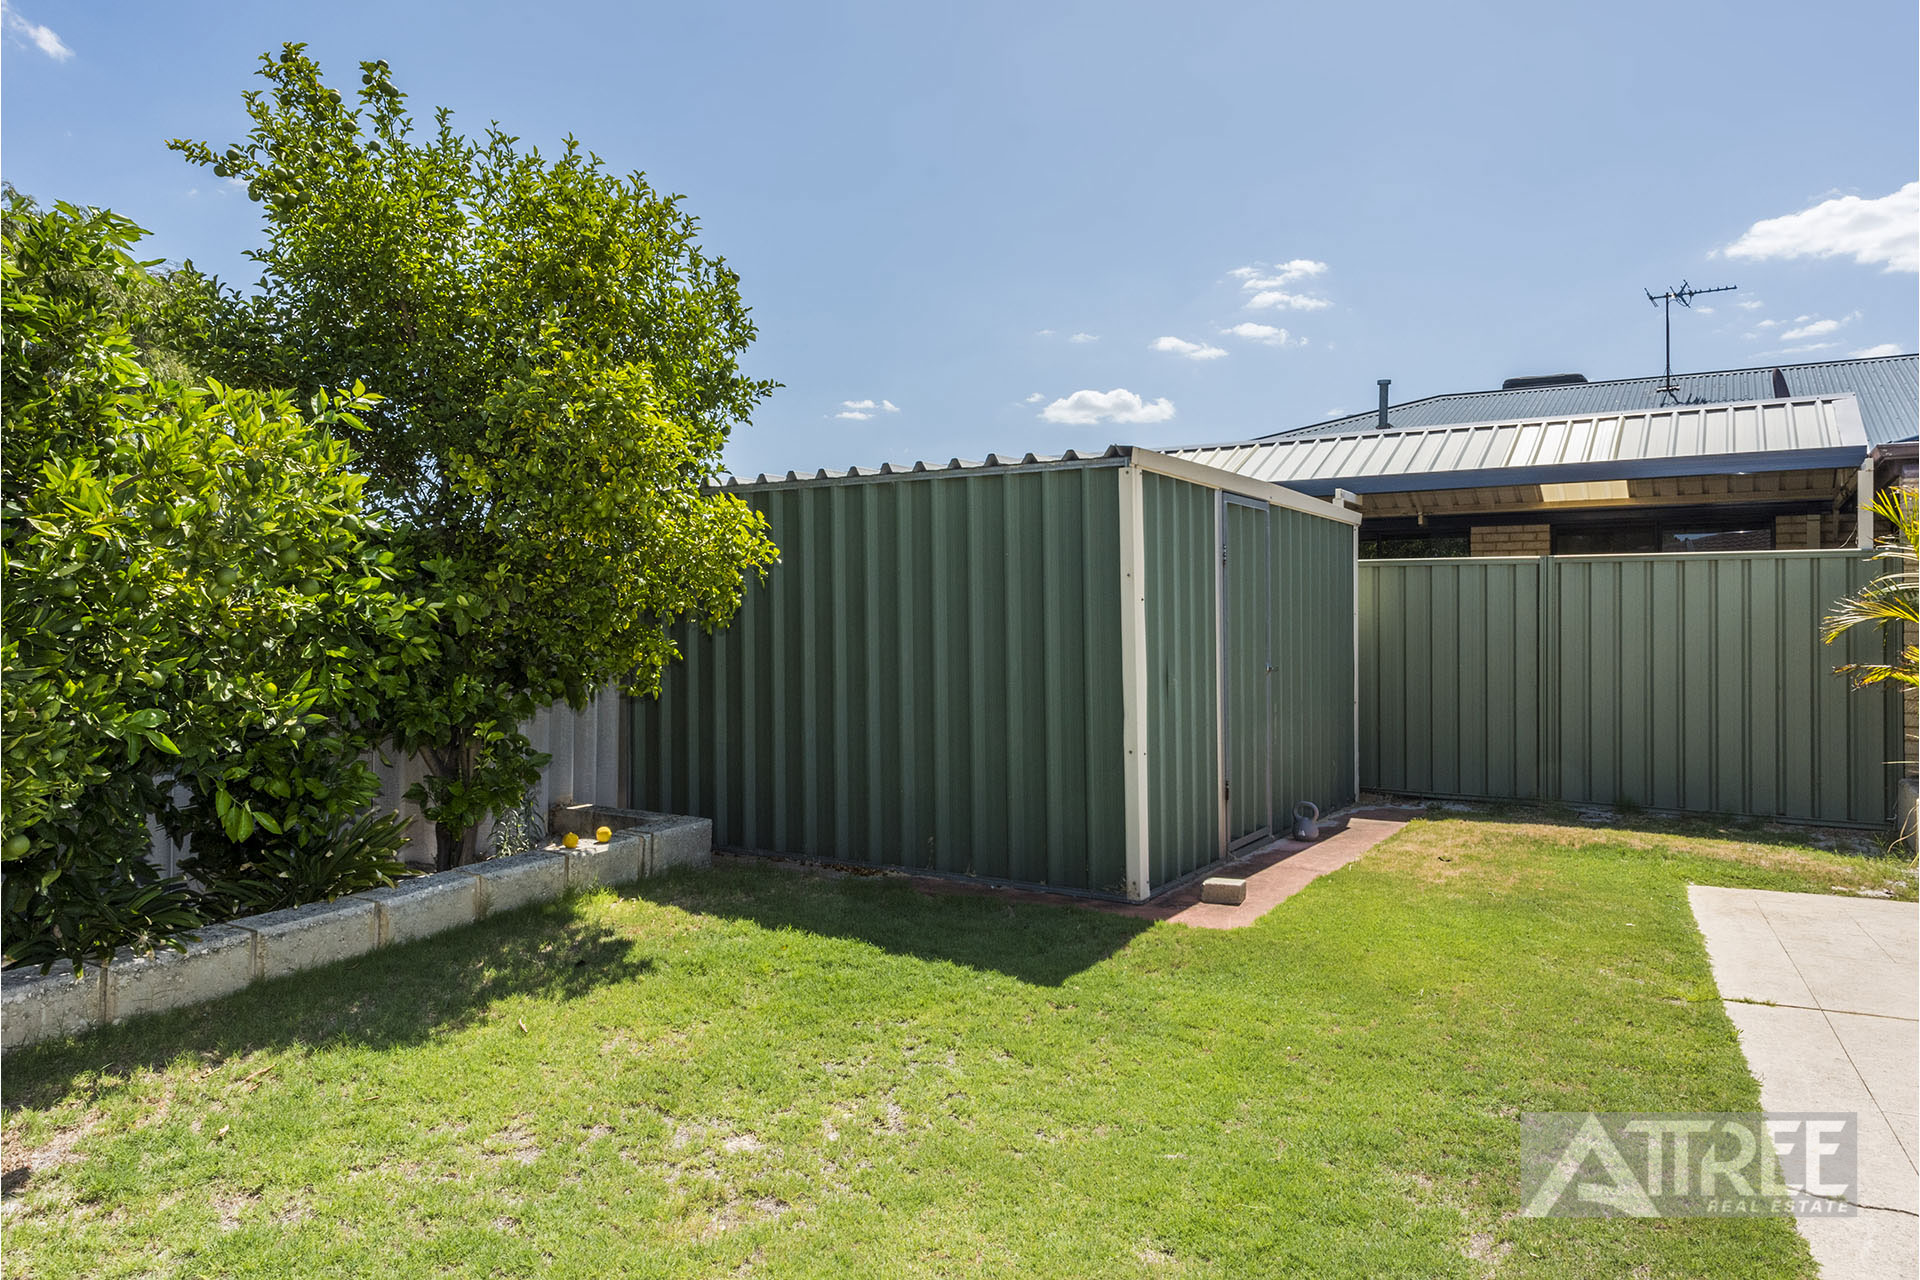 Property for sale in HUNTINGDALE, 1 Kilmurray Elbow : Attree Real Estate